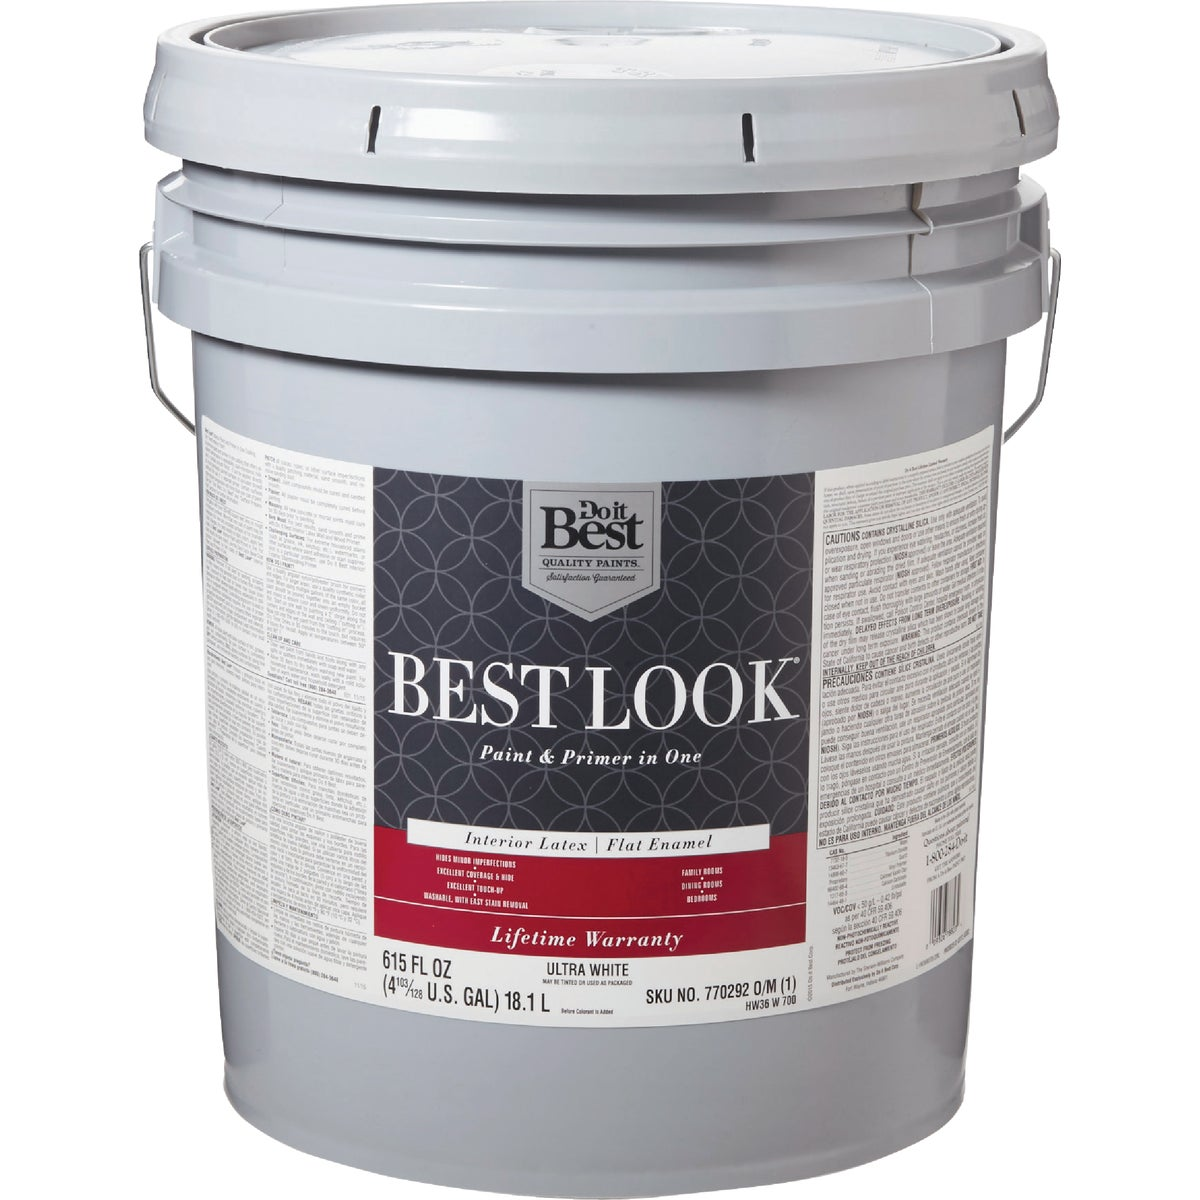 INT FLAT ULTRA WHT PAINT - HW36W0700-20 by Do it Best